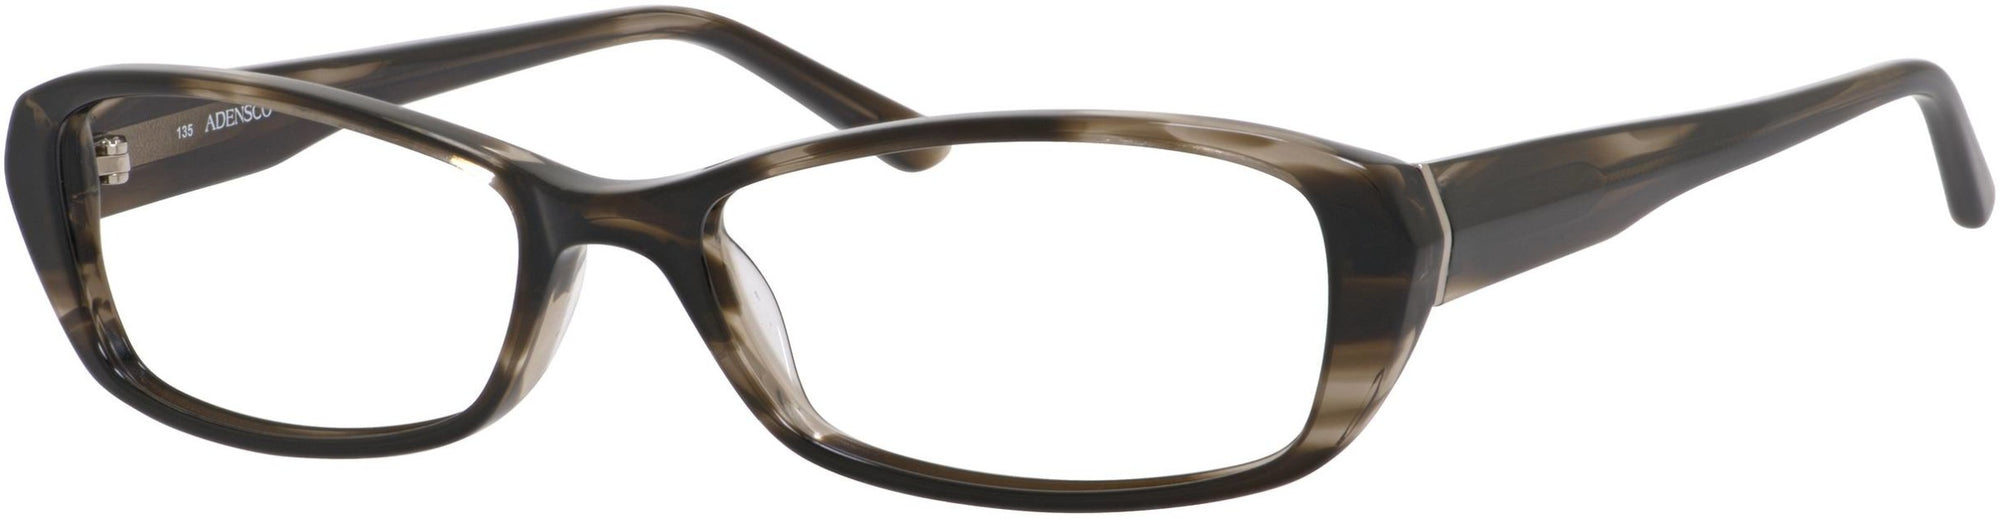 Adensco AD 206 Rectangular Eyeglasses 0CY7-0CY7  Black Striated (00 Demo Lens)